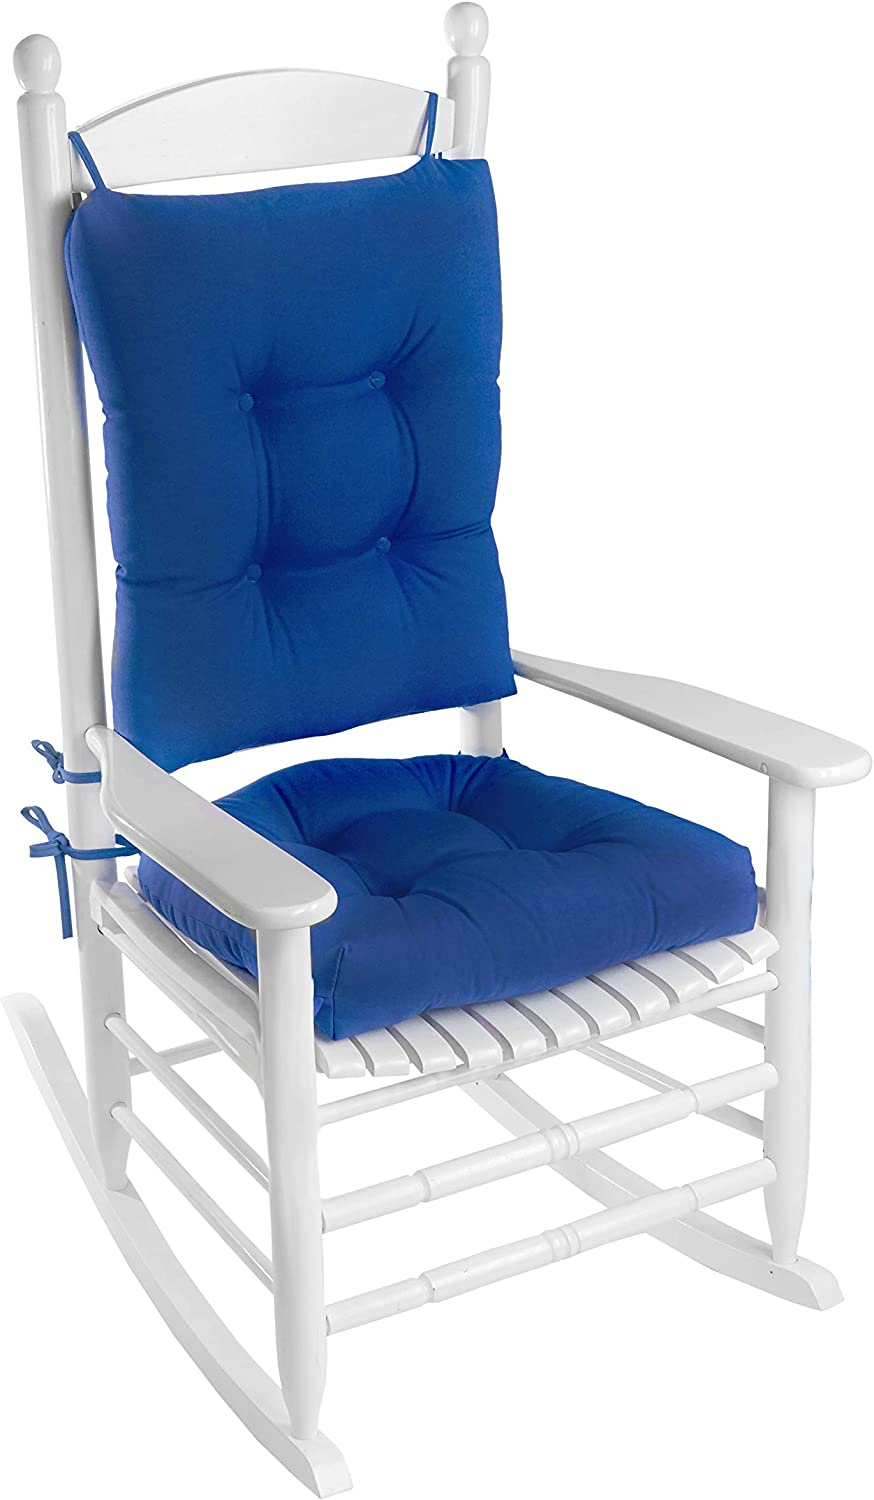 Klear Vu Indoor Outdoor Rocking Chair Pad Set, Cushion seat Measures 19L x 18.5W x 3H, and Back Measures 20.5L x 18W x 3H, Blue